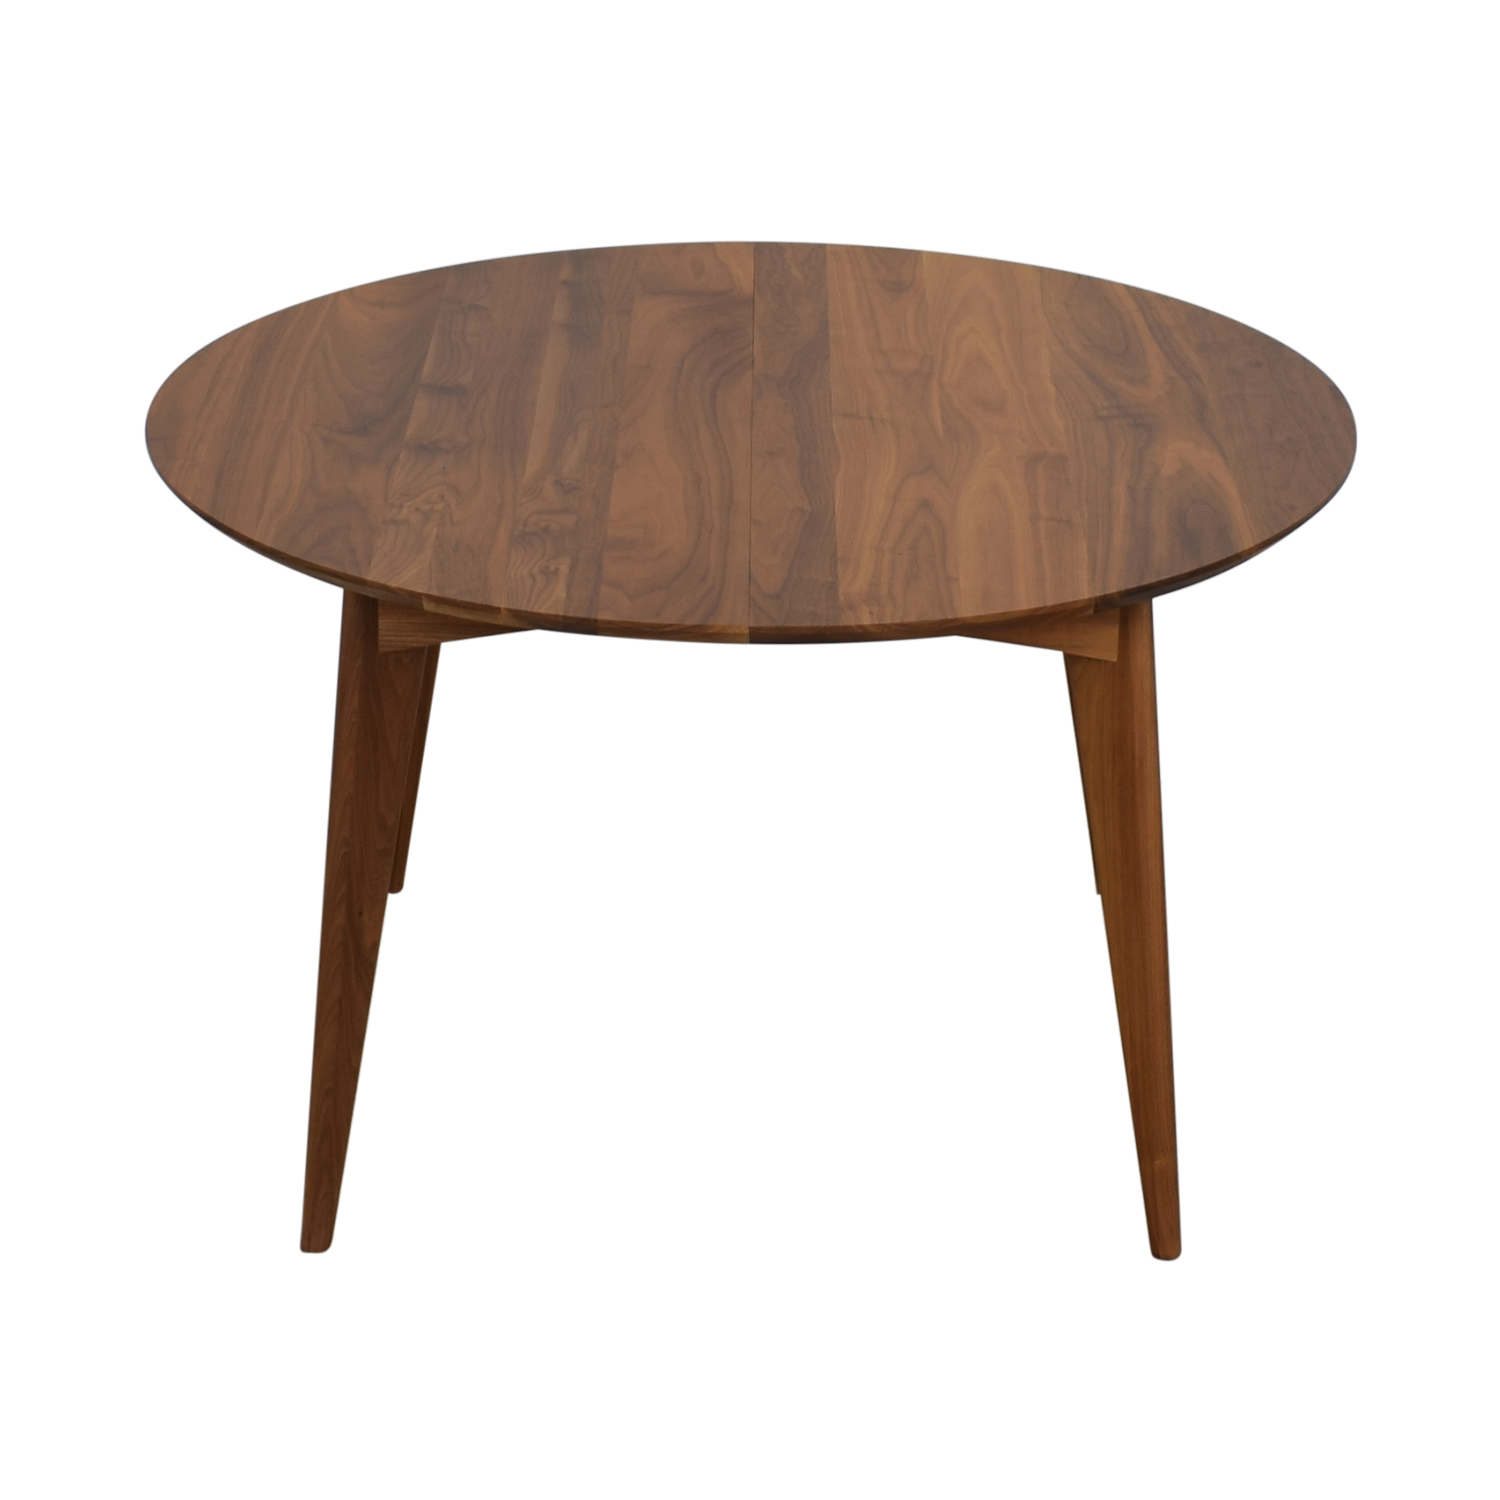 Room & Board Ventura Round Extension Table sale